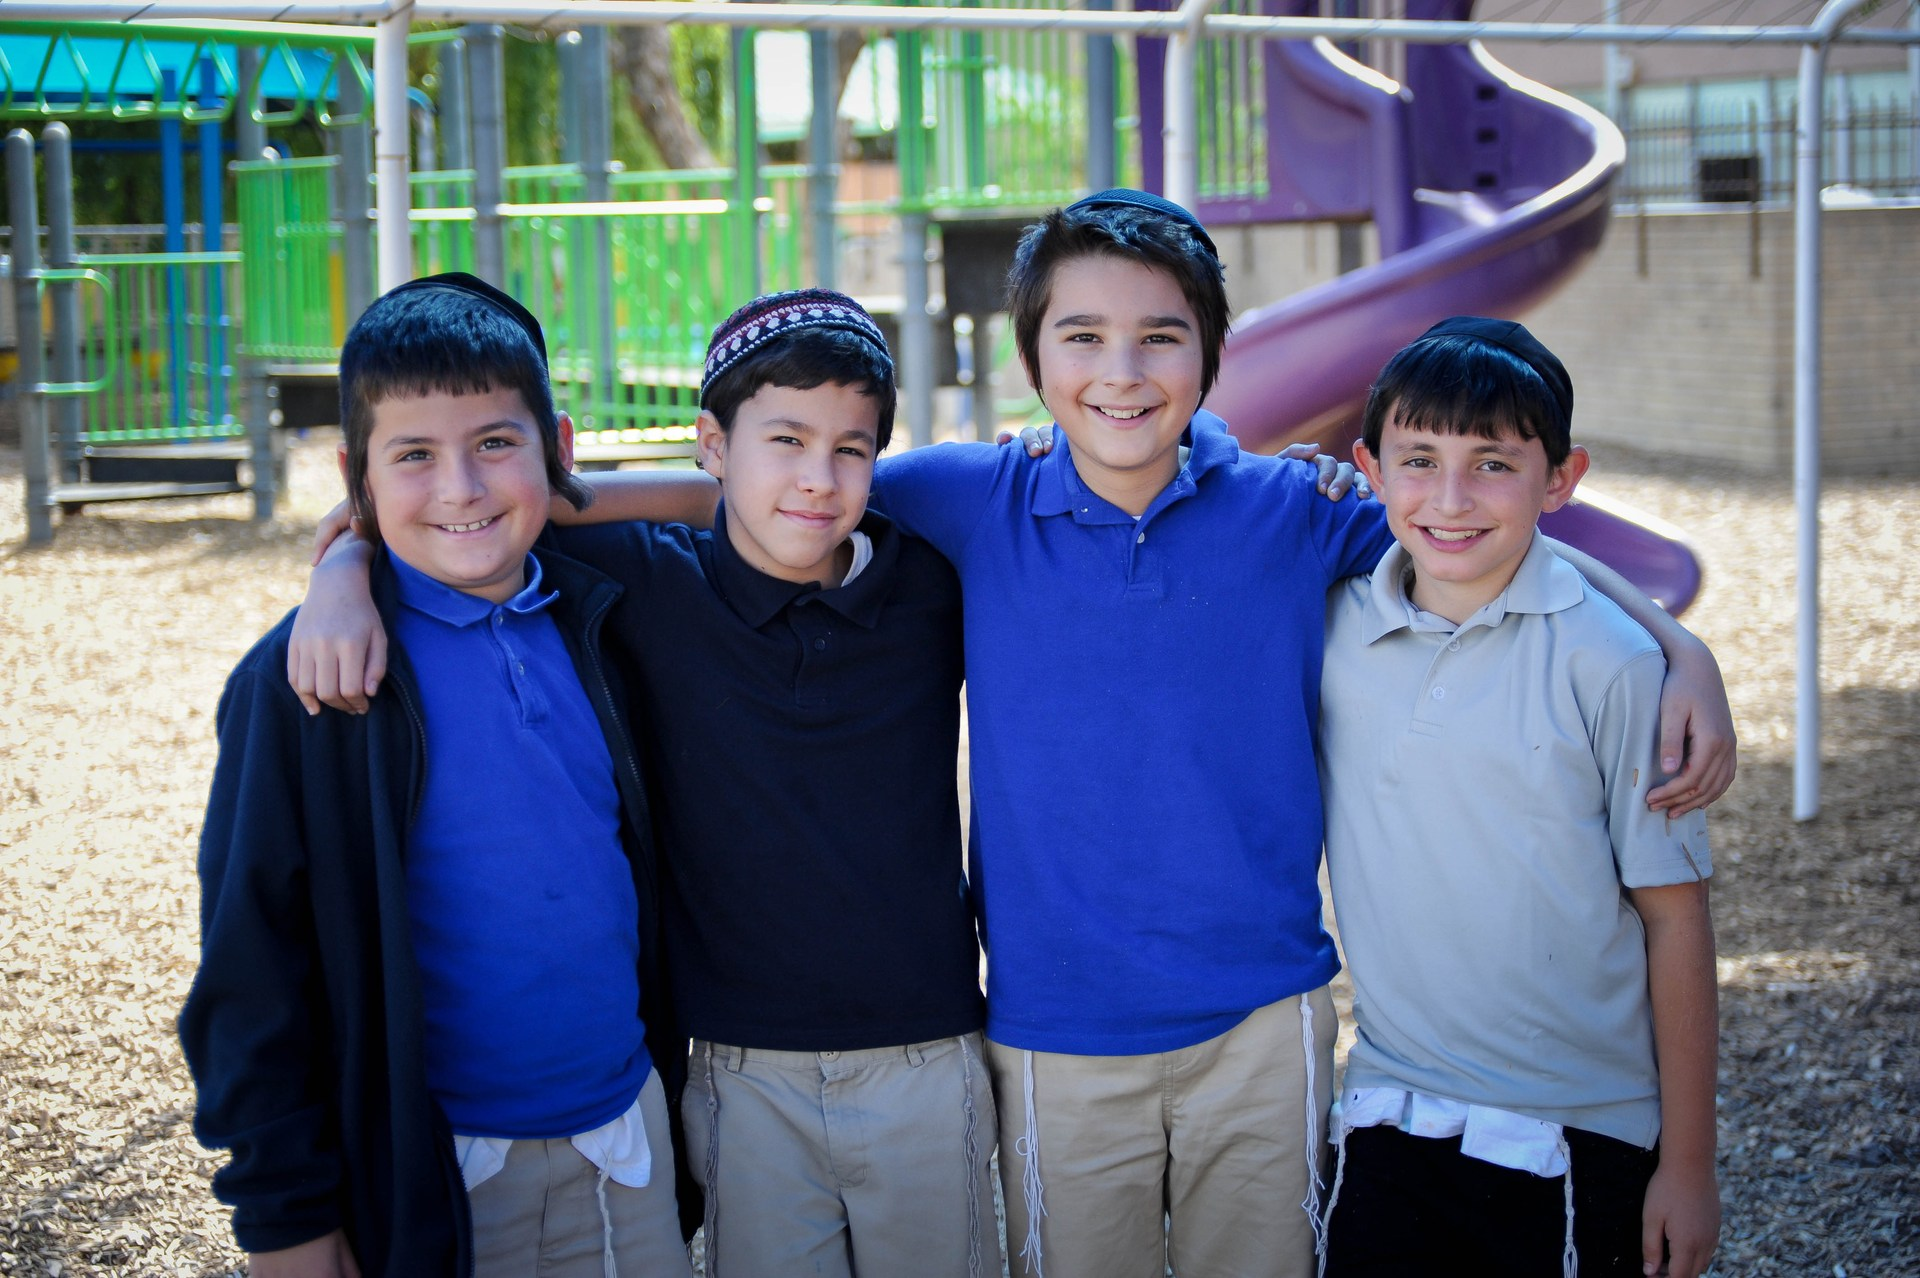 boys smiling on playground